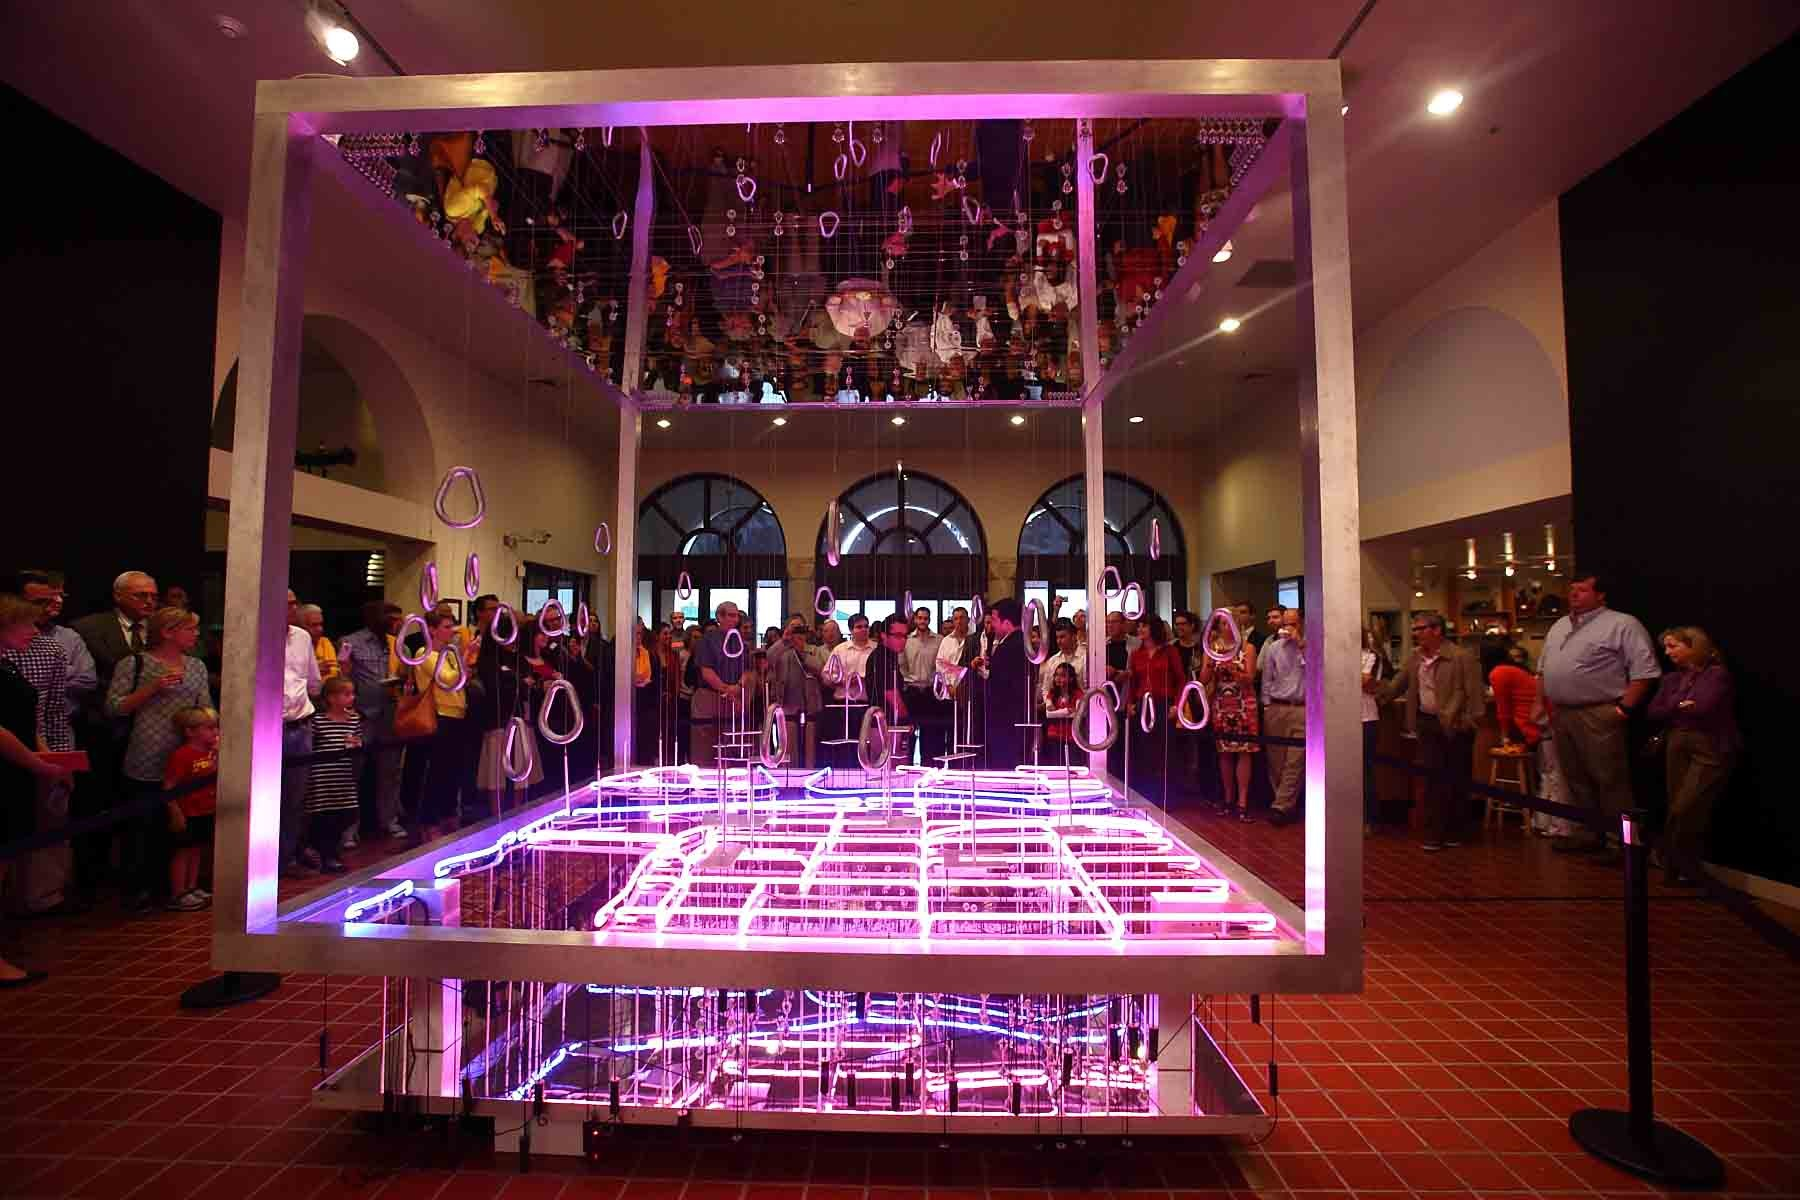 'Up-Downtown' DawnTown's 2012 Competition Winning Installation, Courtesy of HistoryMiami